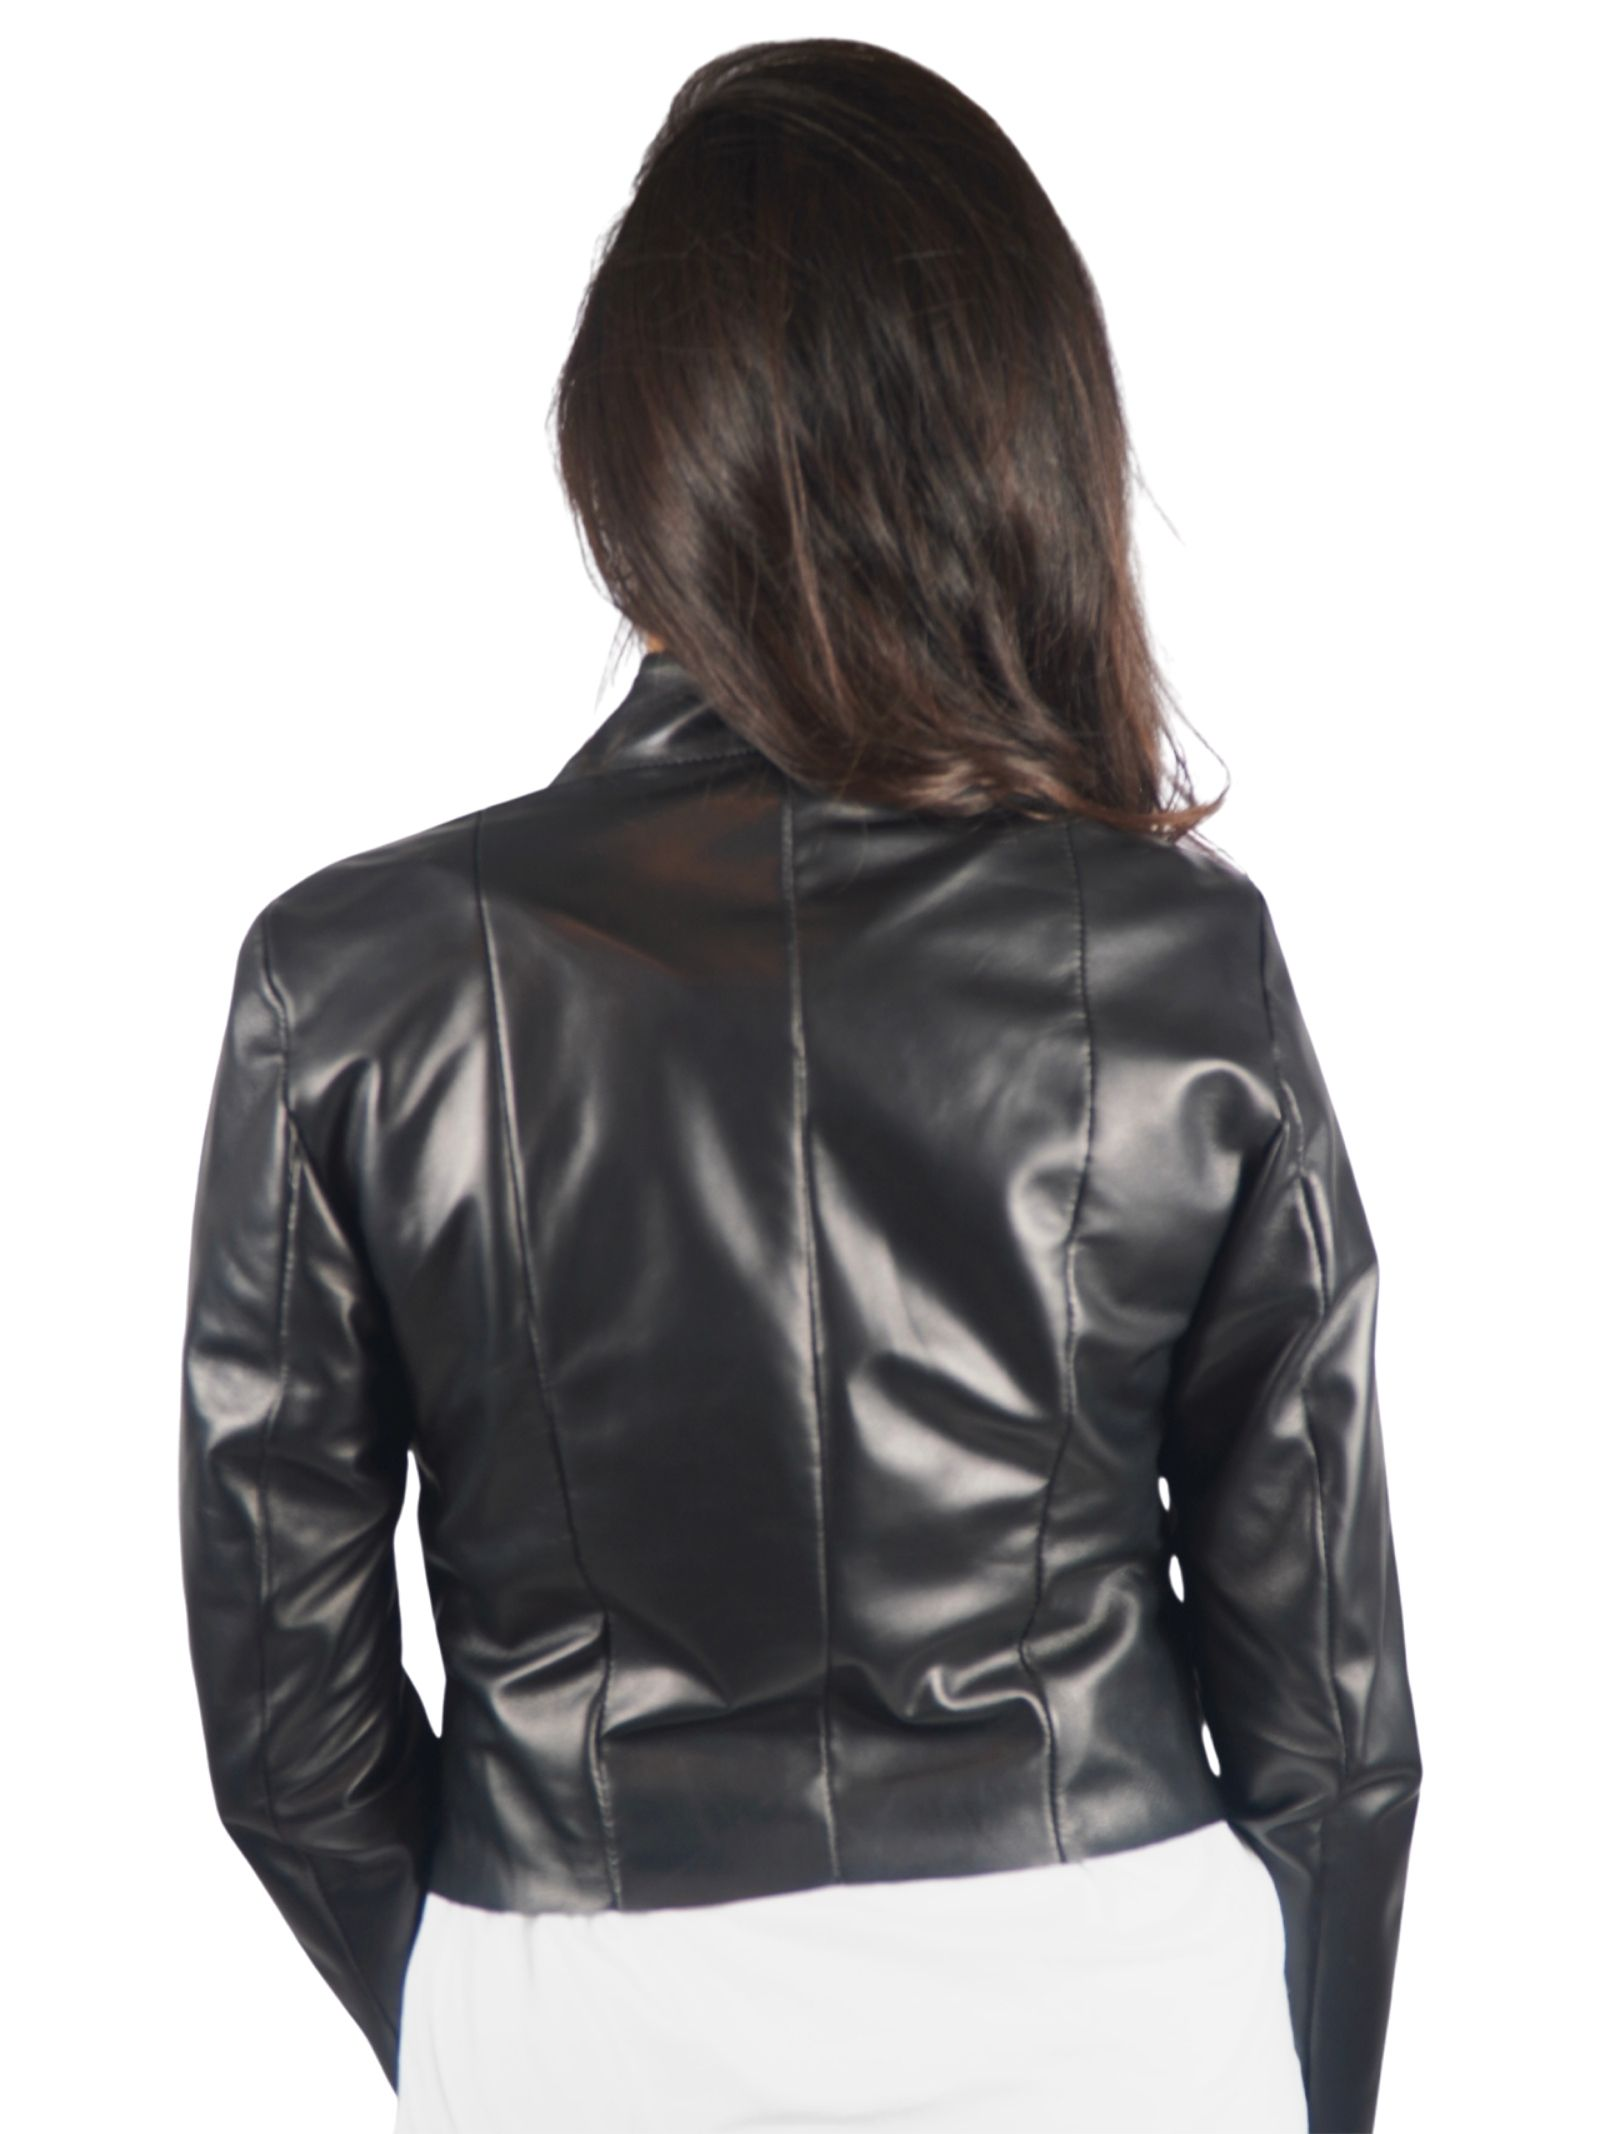 Women's Clothing Bolerino Jacket in Black Leather with Tone Leather Insert on the Front Spatarella | Jackets | 2154001